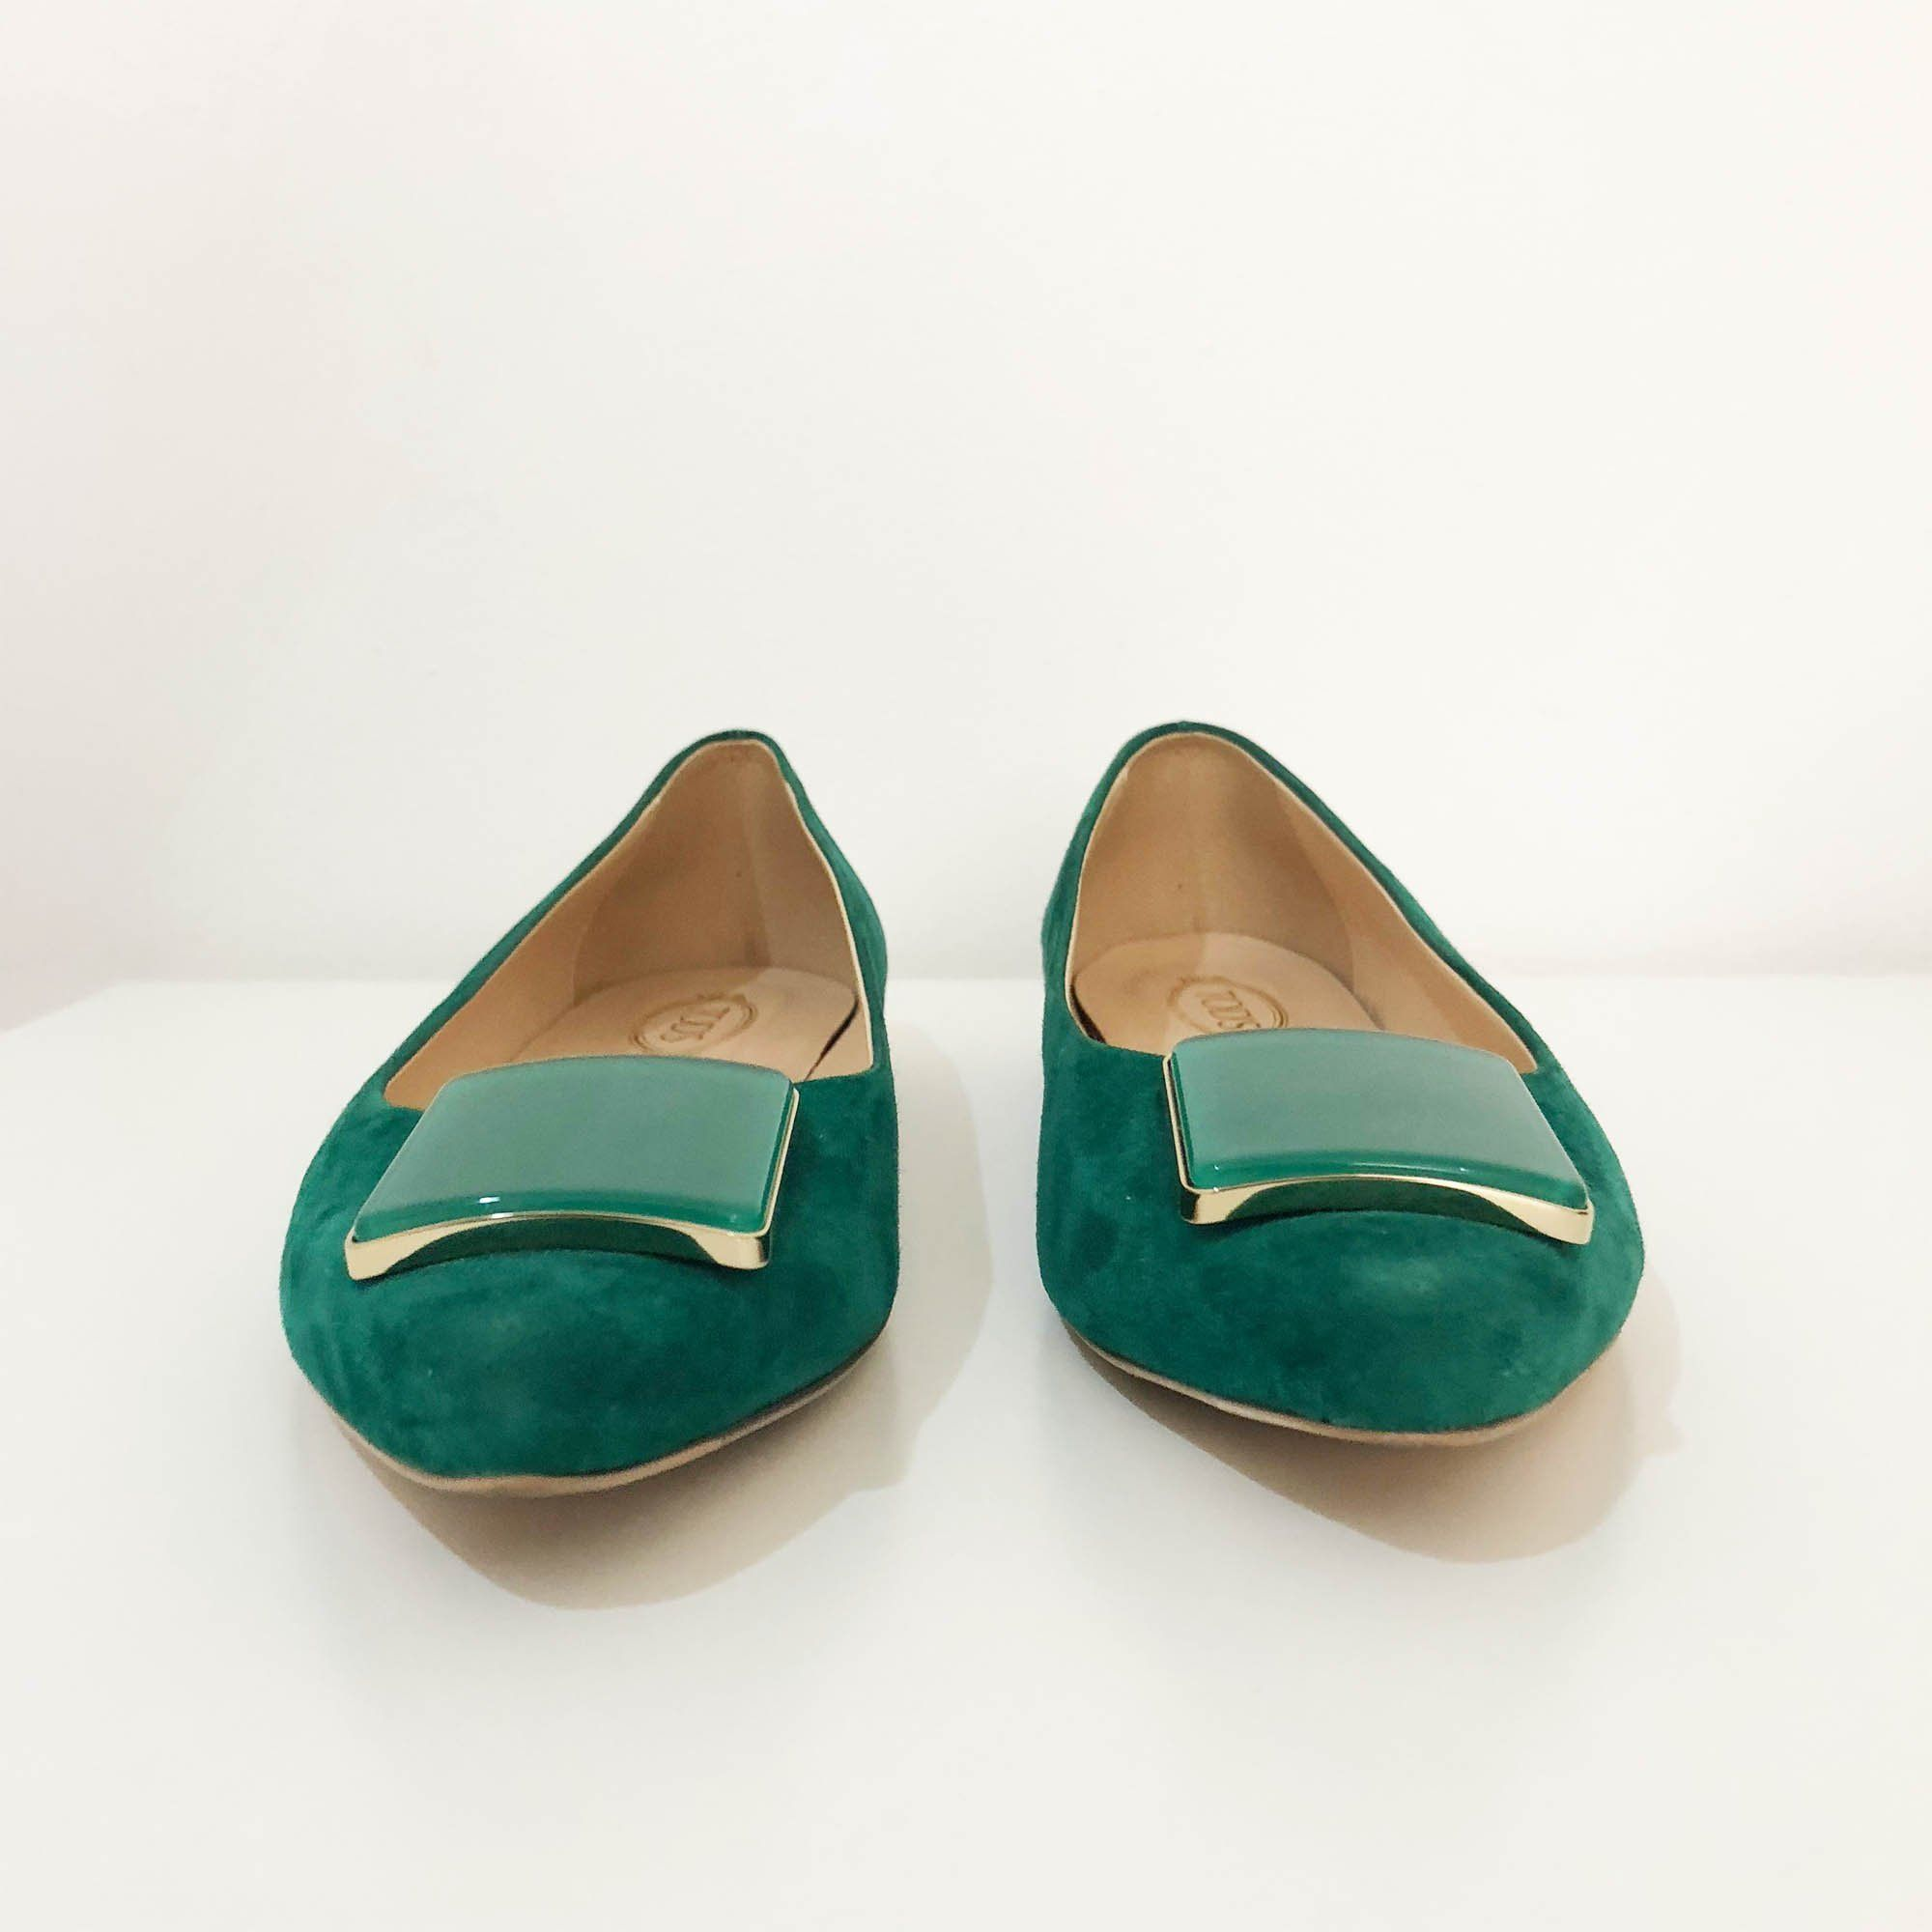 Tods Green Suede Pointed Toe Flats